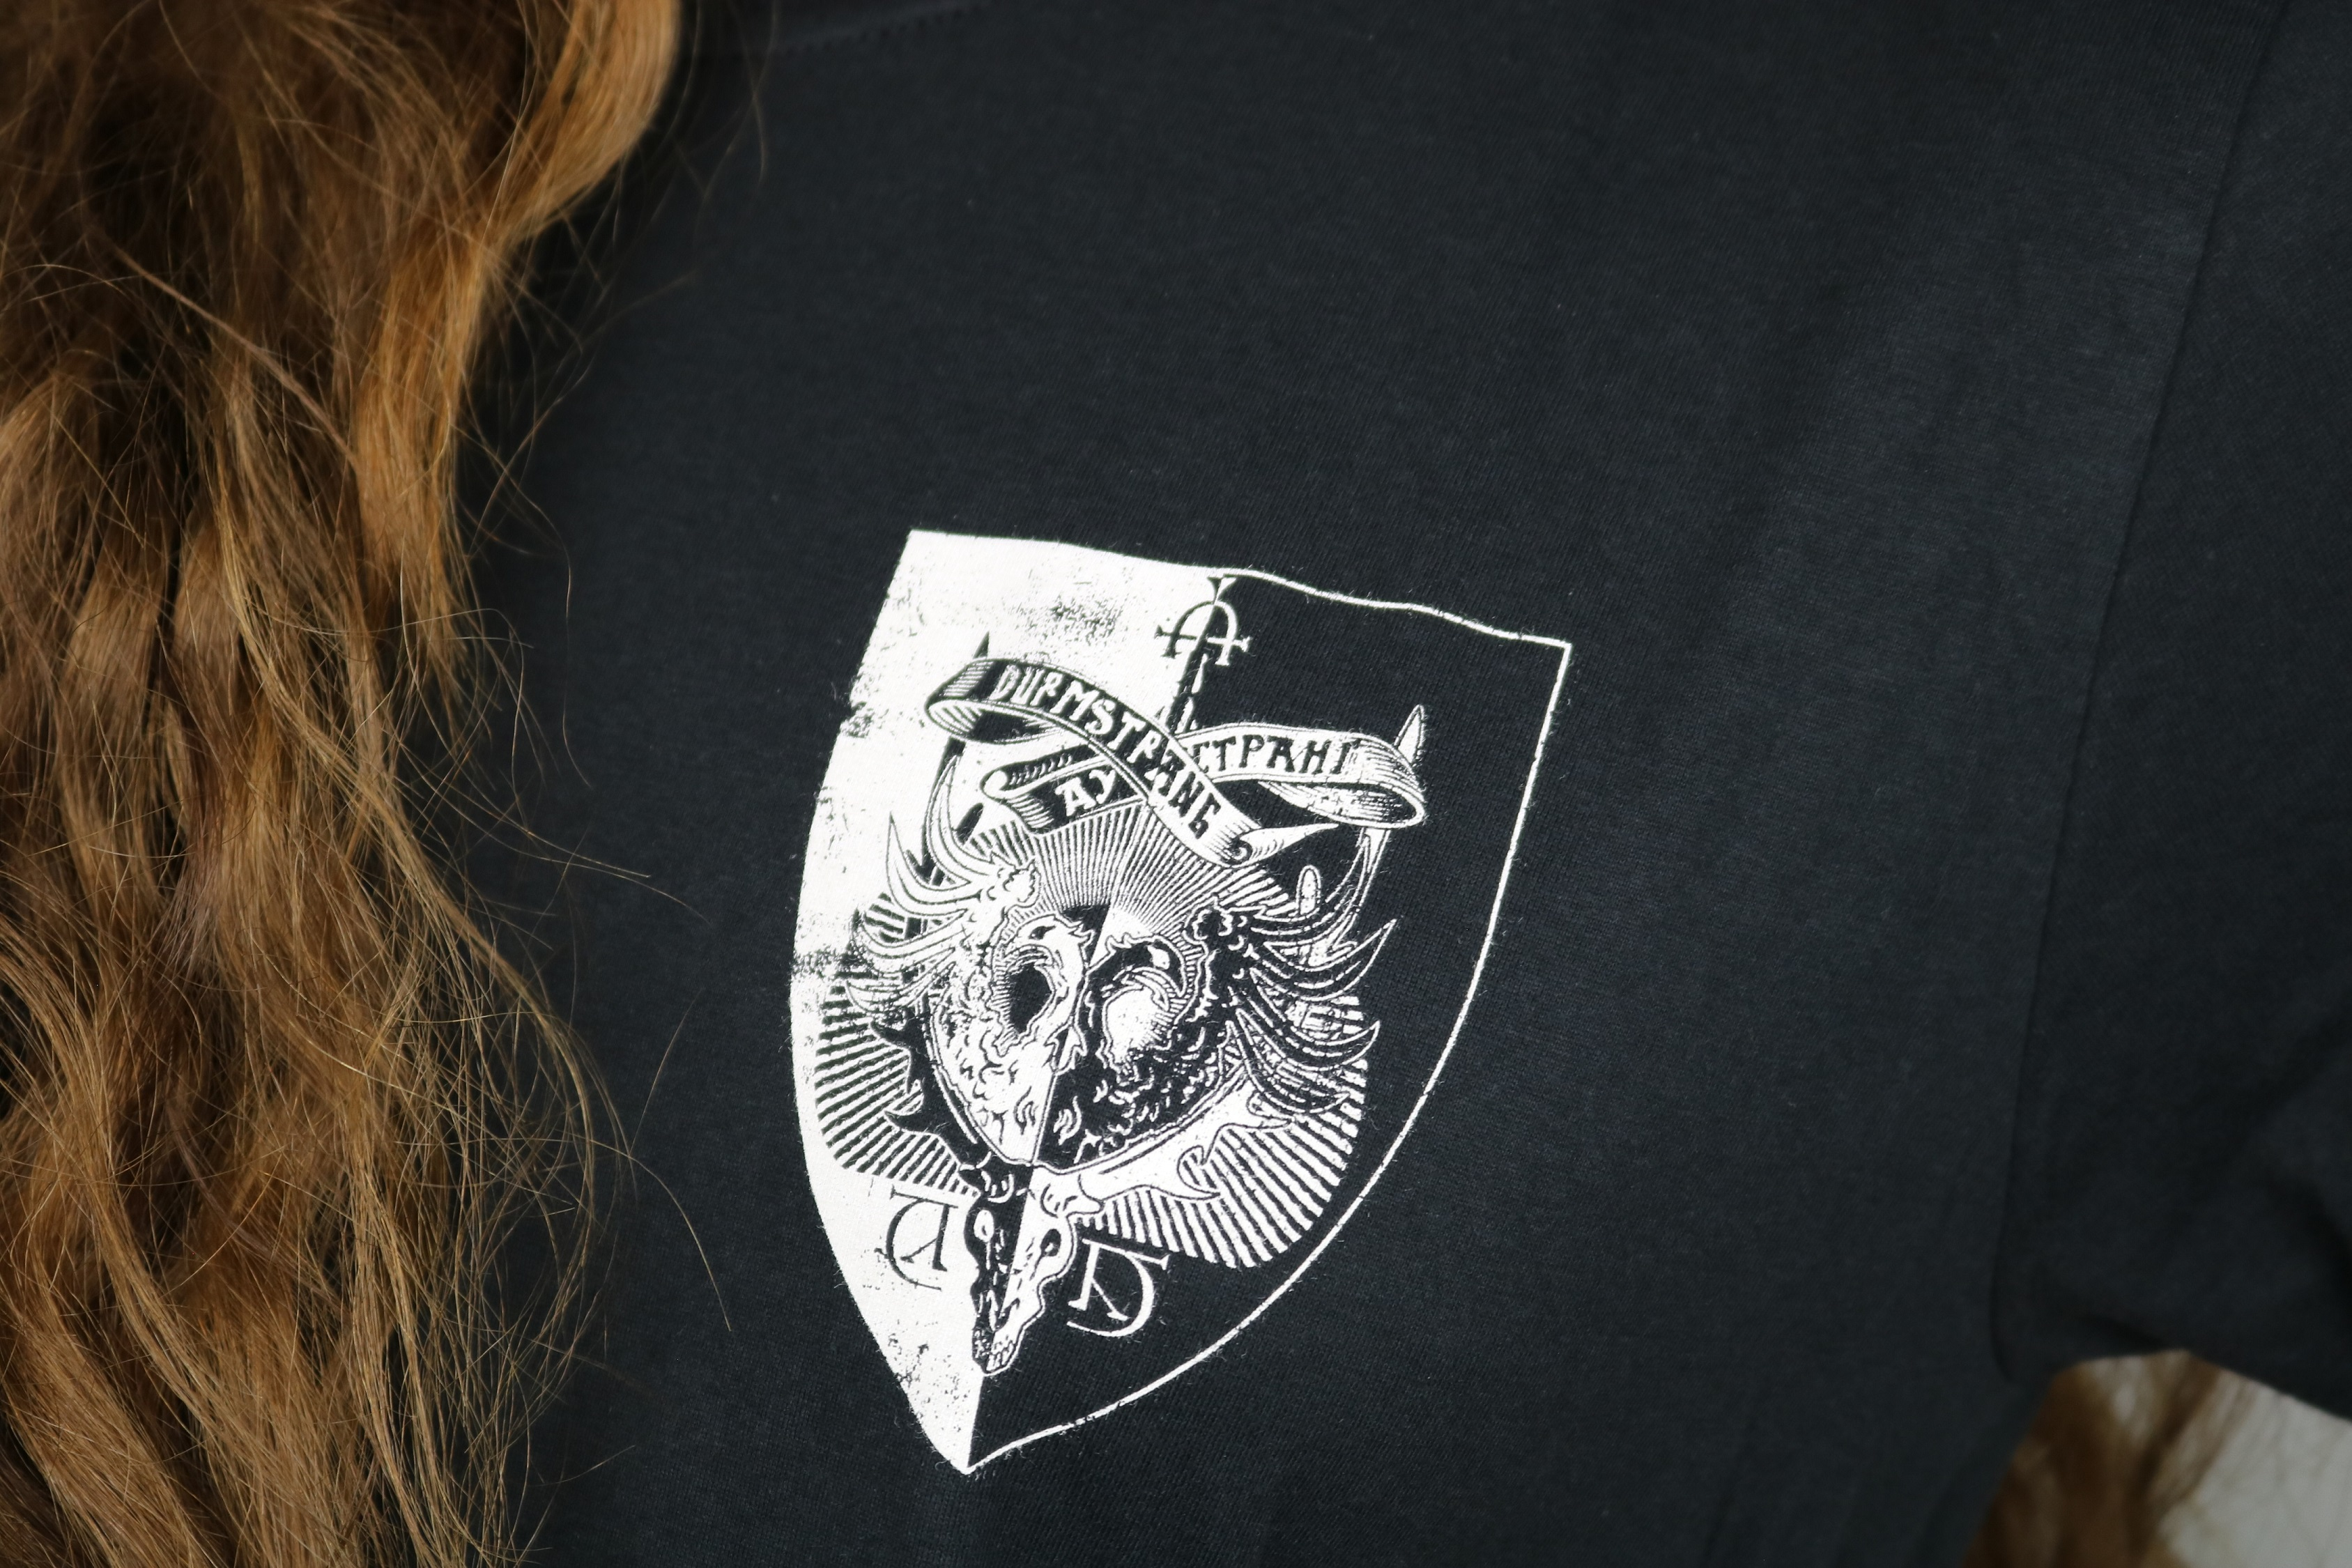 Exclusive Durmstrang Crest Short Sleeved T Shirt Black Geek Gear I agree to askfm terms of services and i'm at least 13 years old. exclusive durmstrang crest short sleeved t shirt black